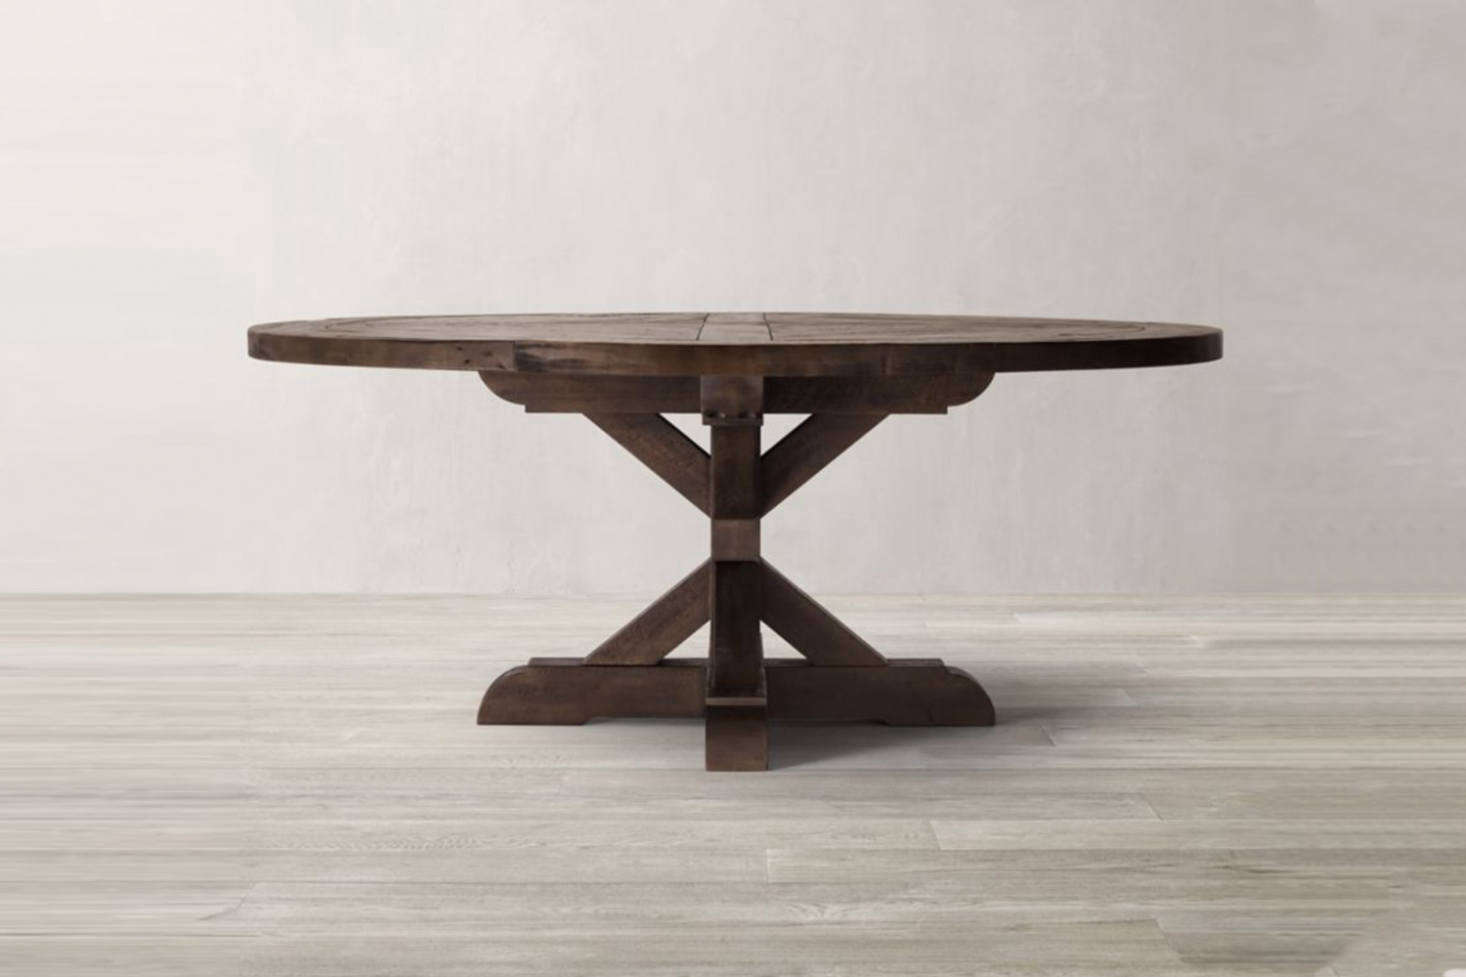 Another off-the-shelf option is the Restoration Hardware Salvaged Wood X-Base Round Dining Table which starts at $2,095—or comb your local flea markets and vintage furniture resources for a similar pedestal dining table.